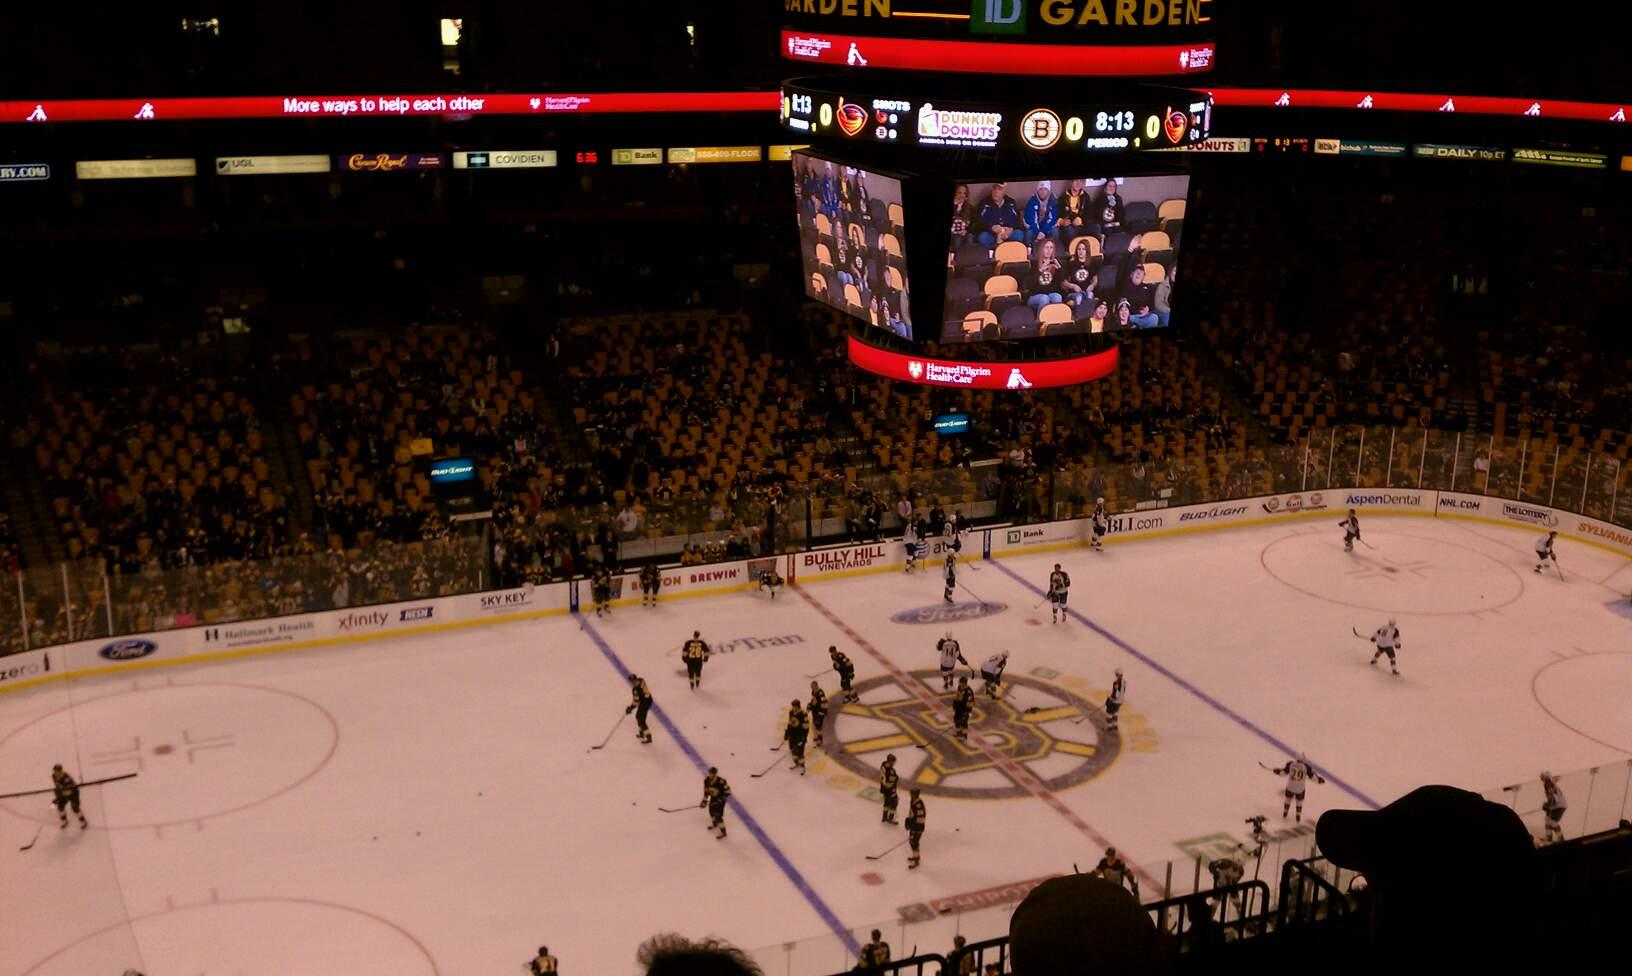 TD Garden Section Bal 318 Row 10 Seat 13